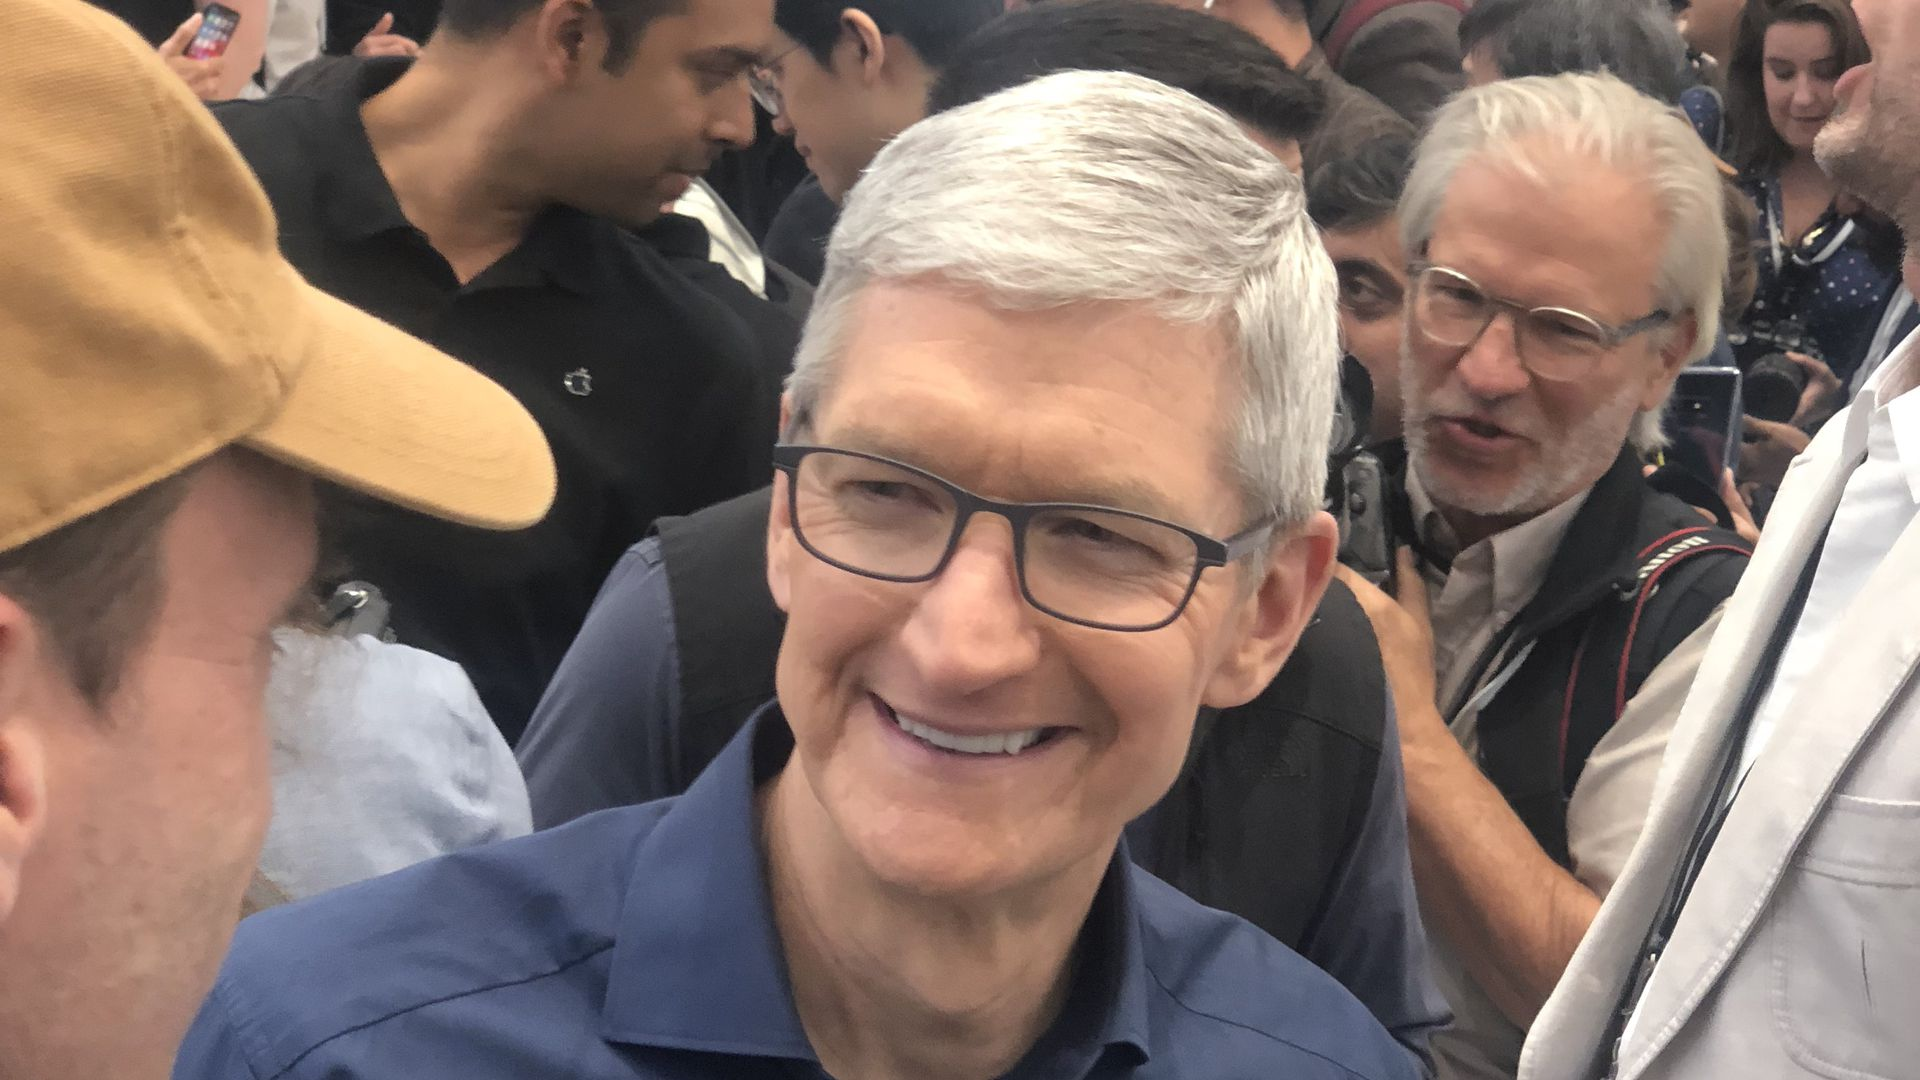 Tim Cook at Apple's Sept. 2018 product launch